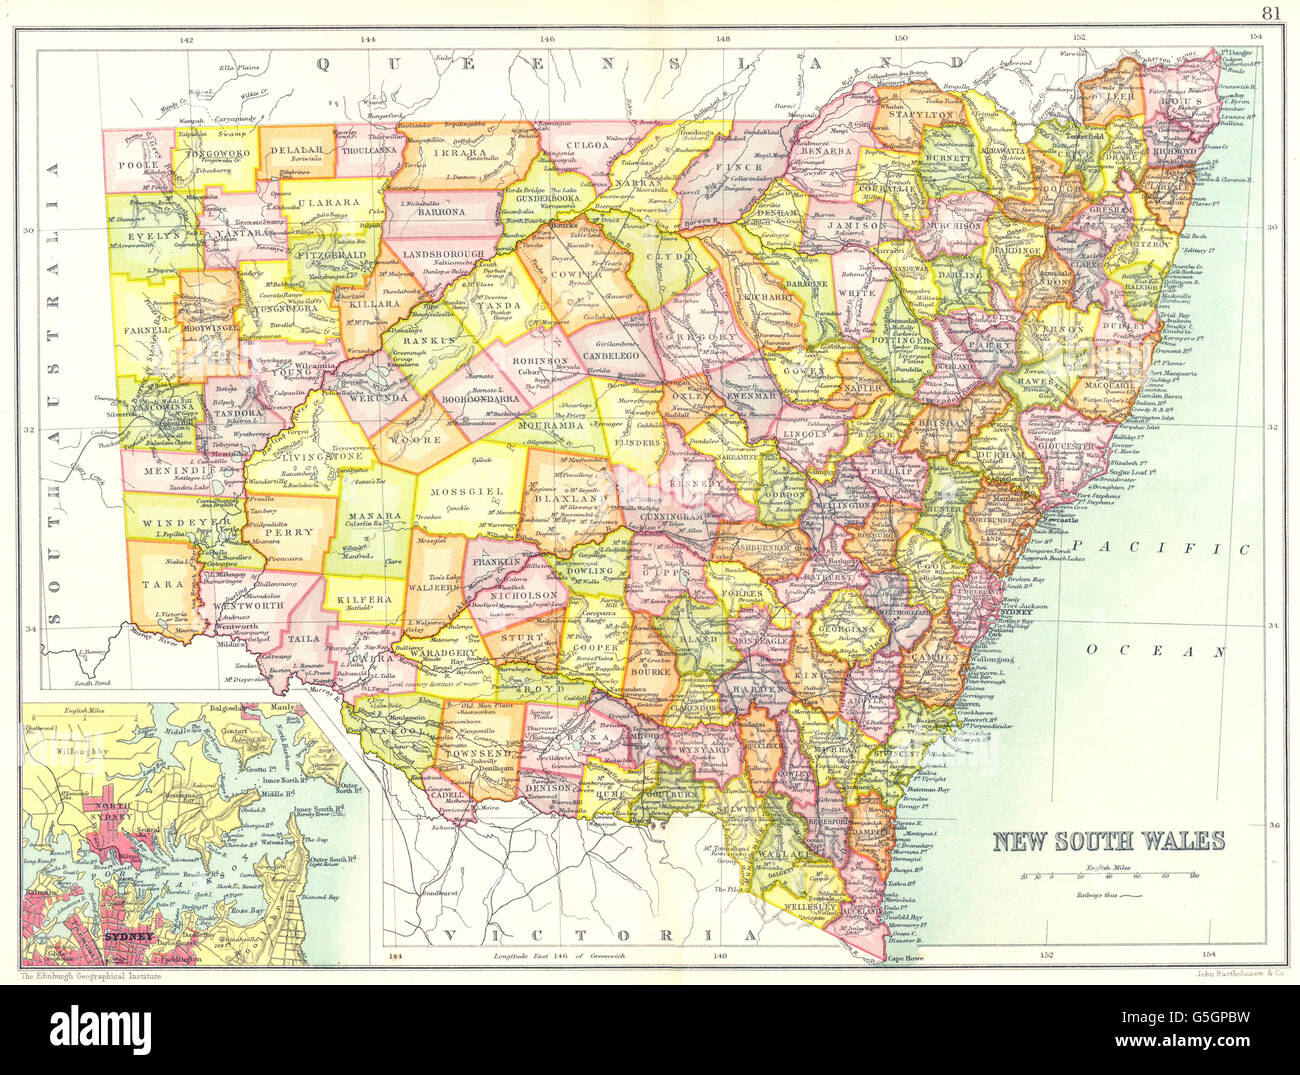 South australia state map showing stock photos south australia new south wales state map showing counties inset map of sydney australia 1909 gumiabroncs Gallery